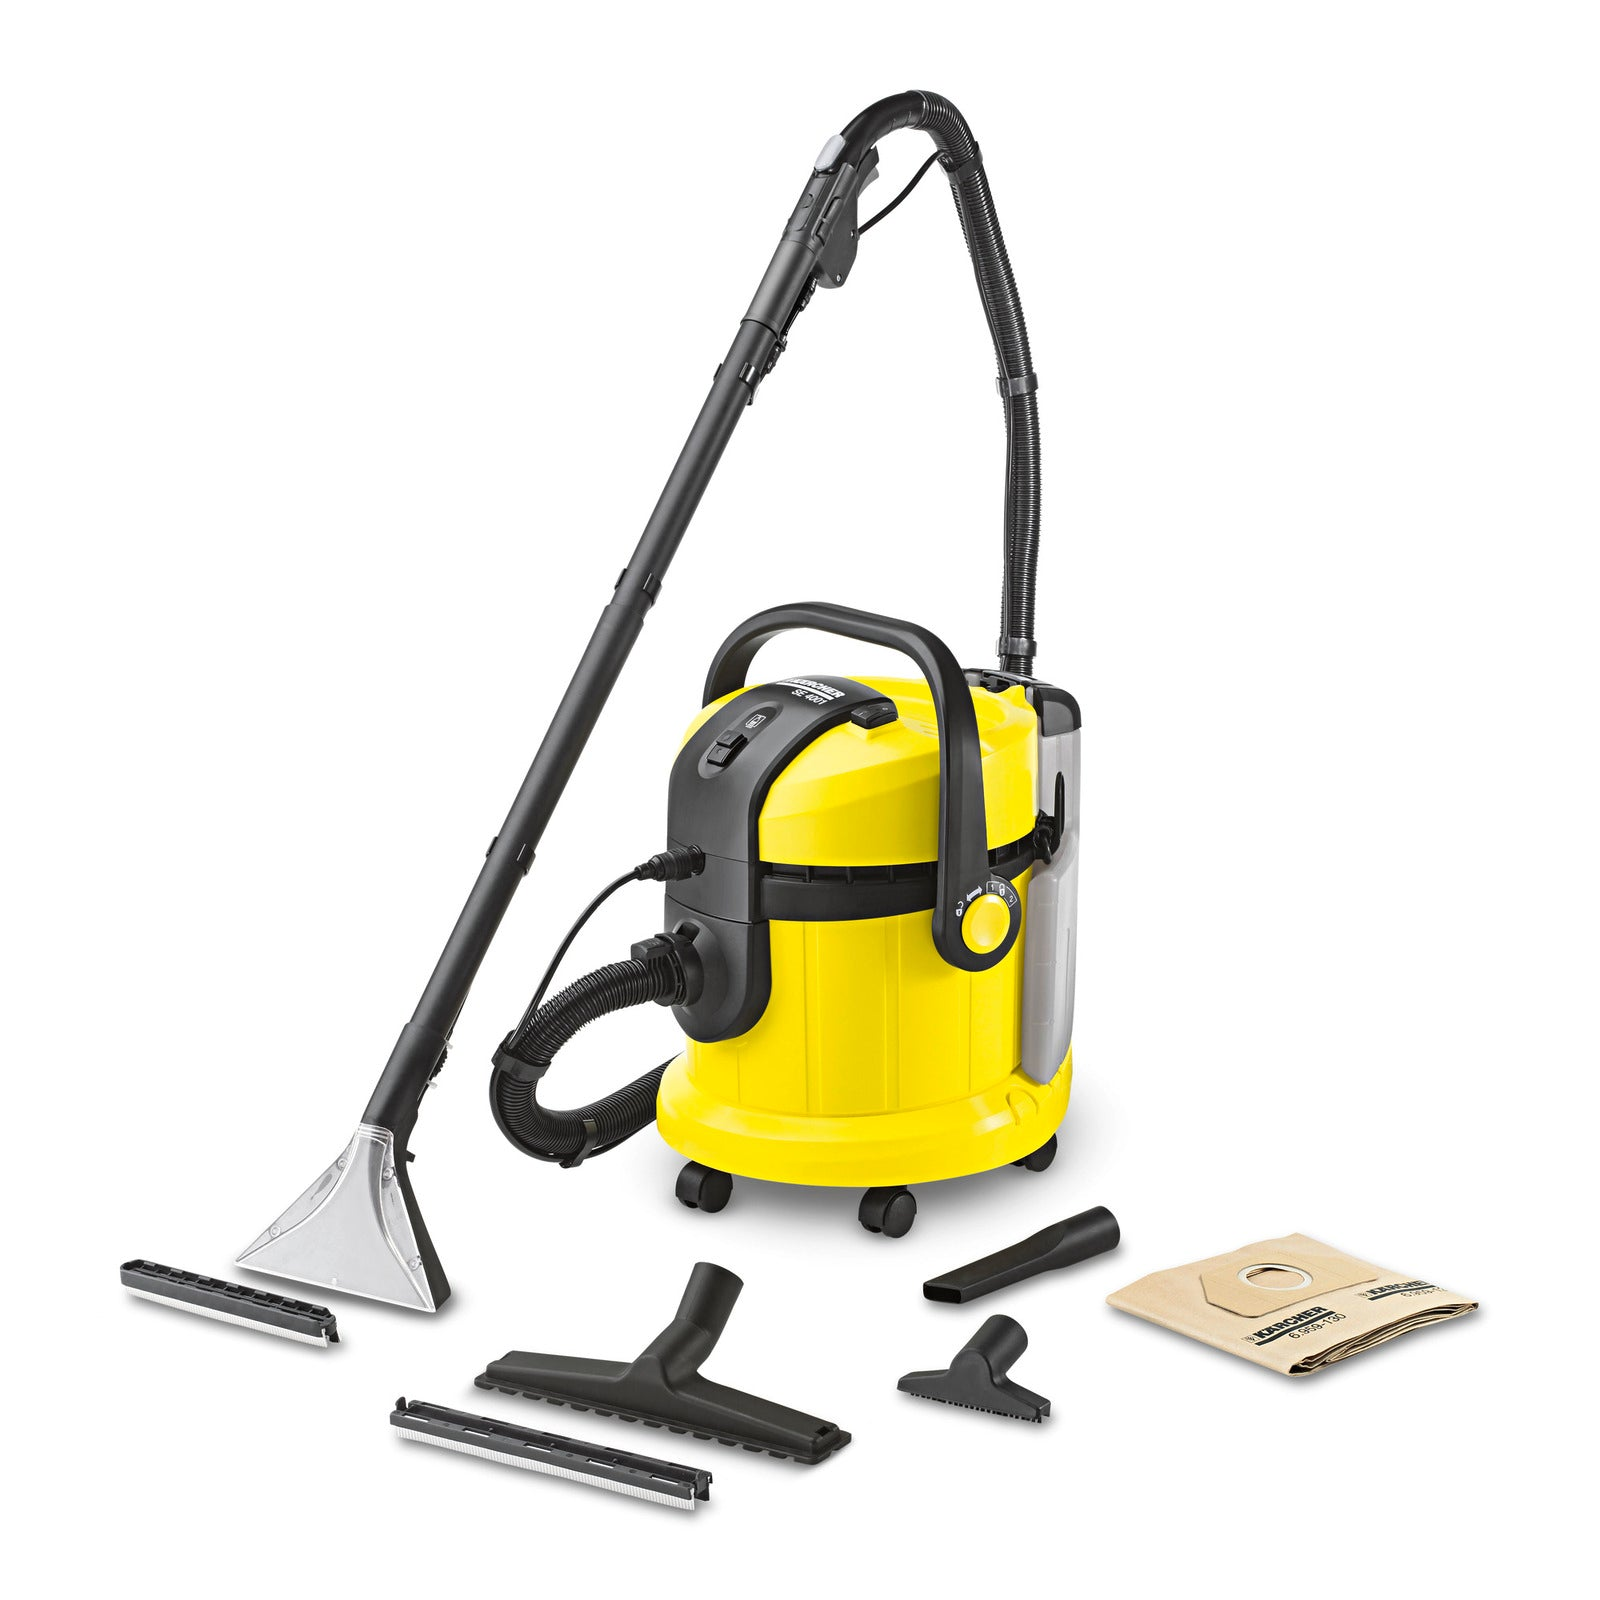 Karcher SE 4001 (Spray Extraction Cleaner)